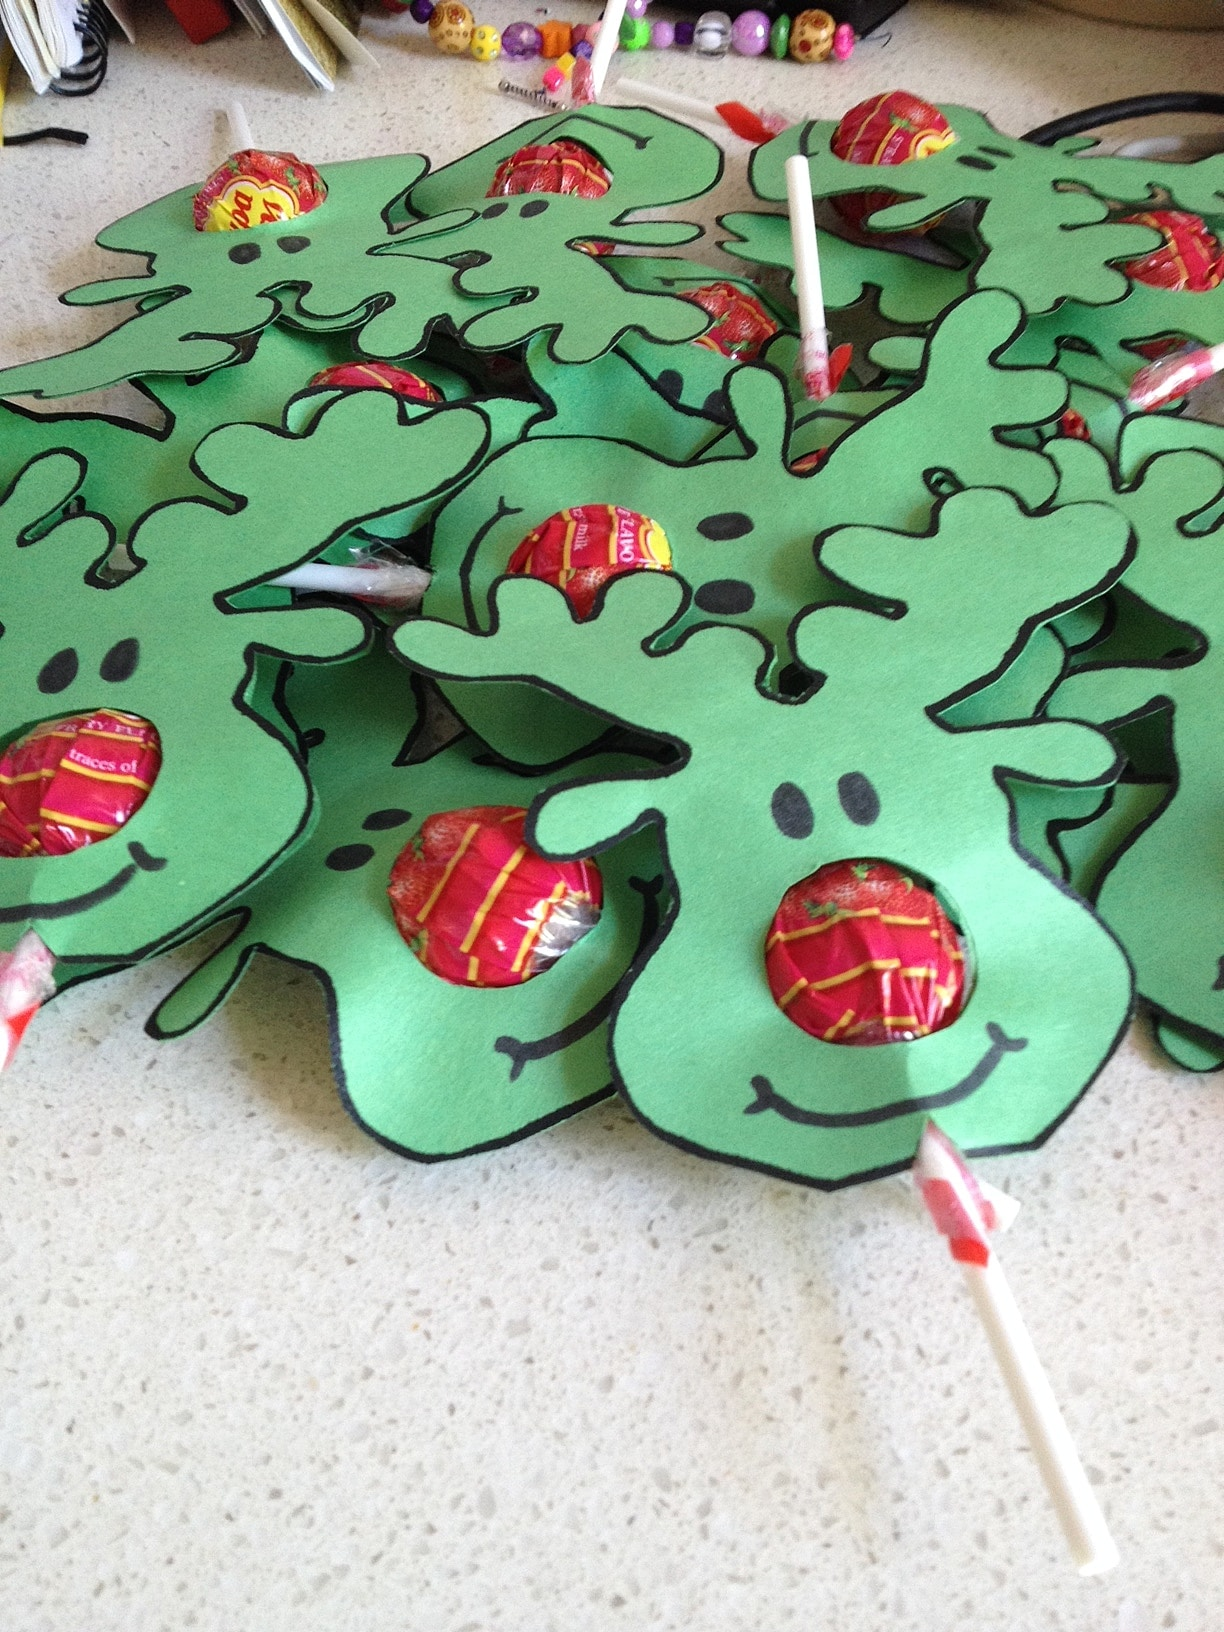 Reindeer chupa chups festive fun brisbane kids for Christmas crafts for older kids